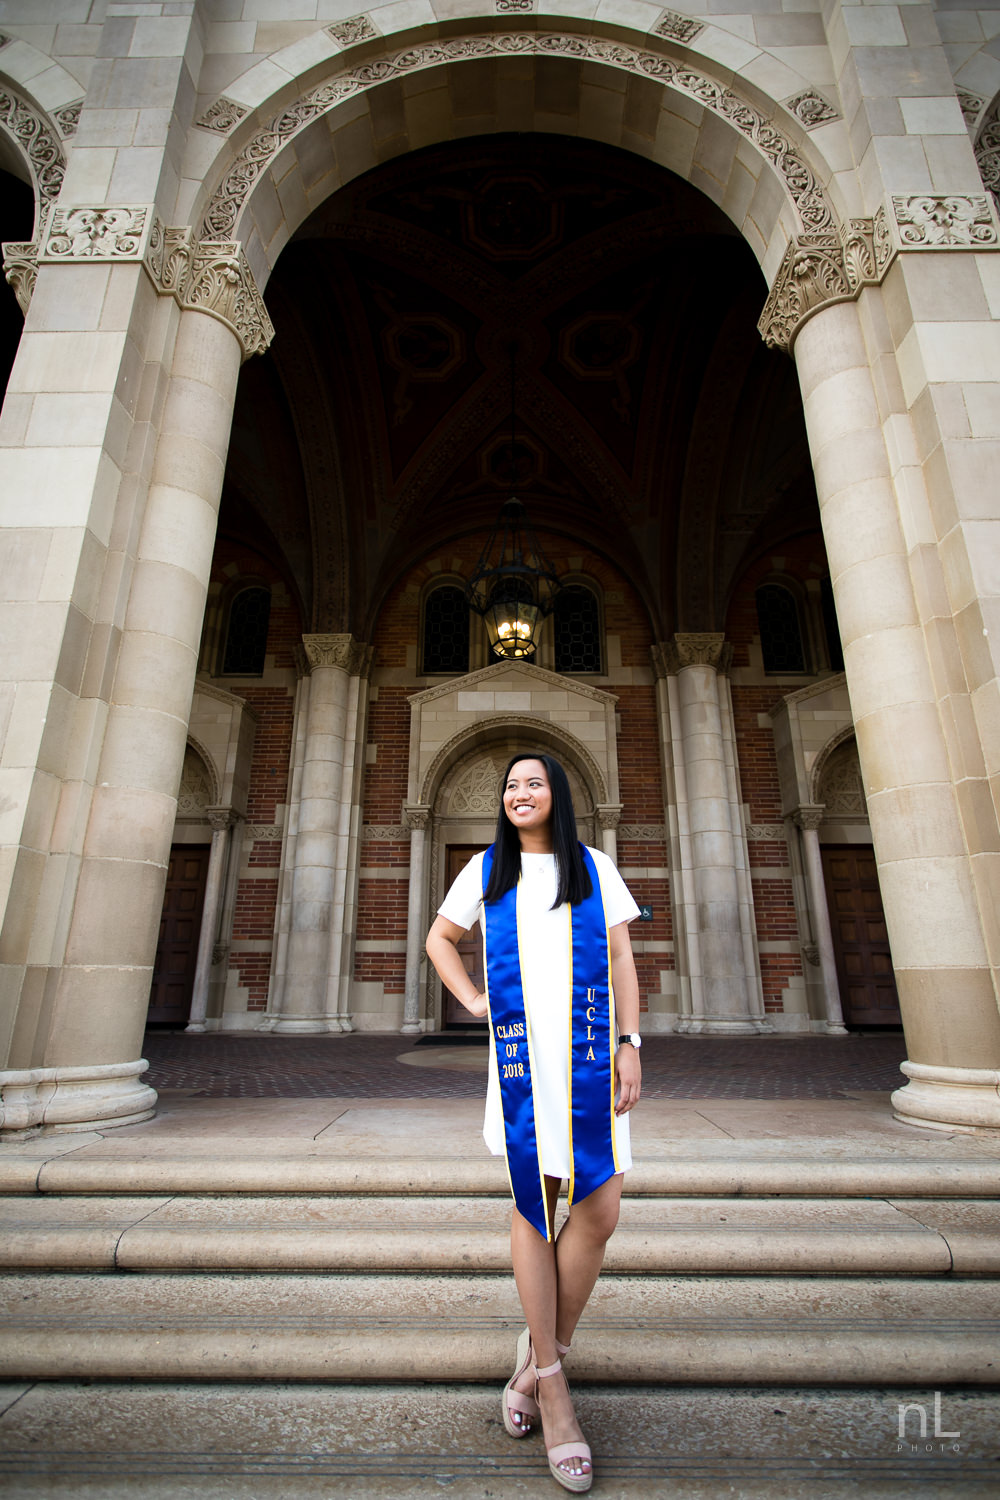 los angeles ucla senior graduation epic environmental portraits royce hall arches girl white dress sash